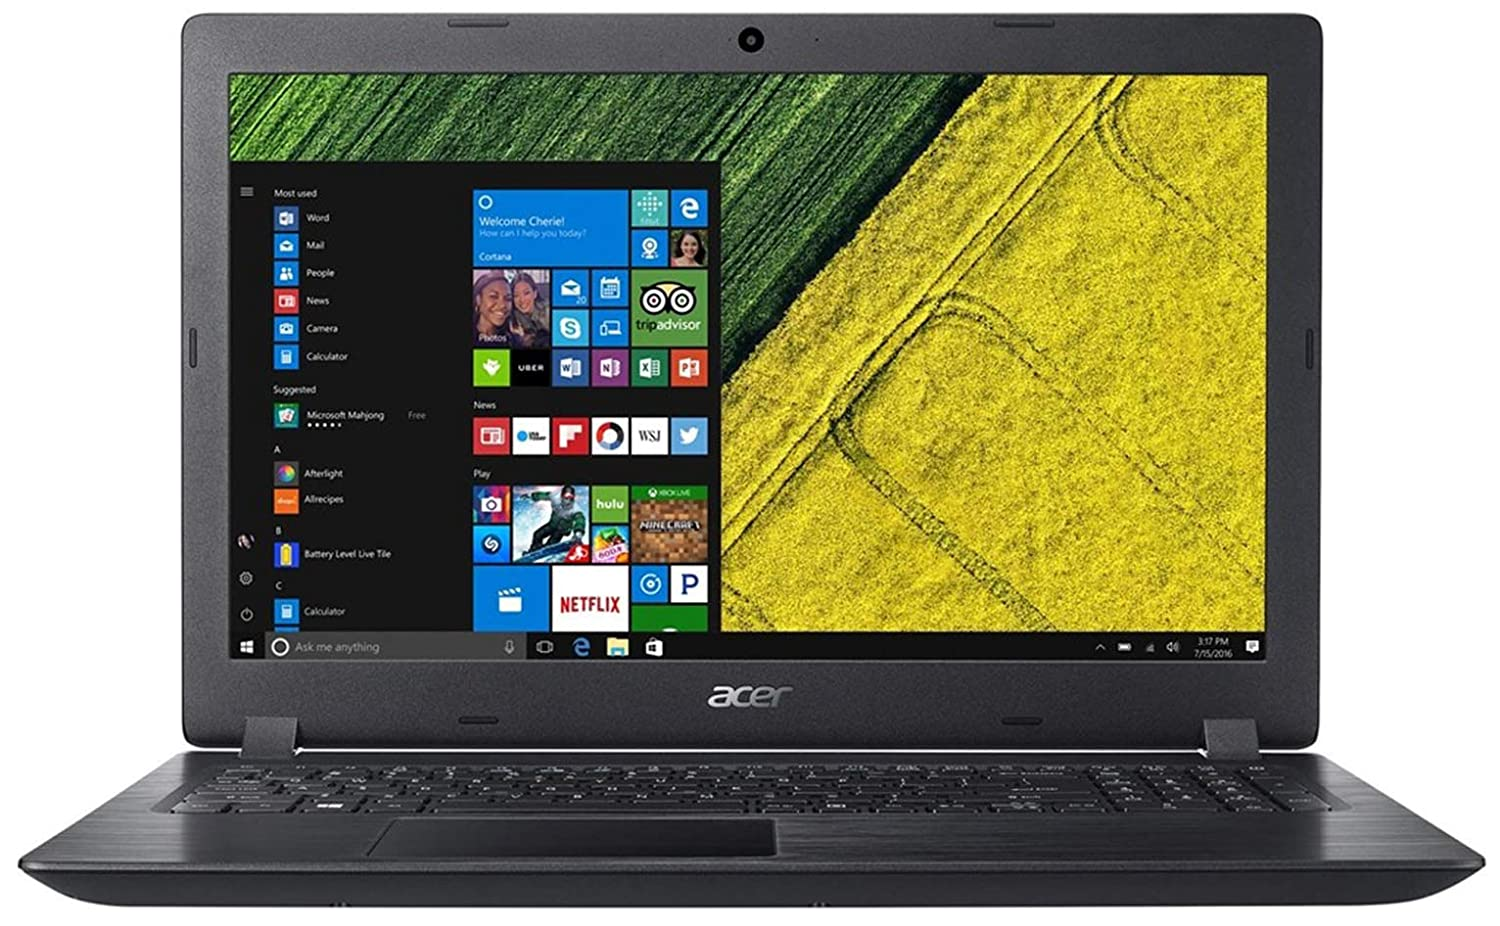 ACER ASPIRE 1500 CARD READER WINDOWS 8 DRIVER DOWNLOAD